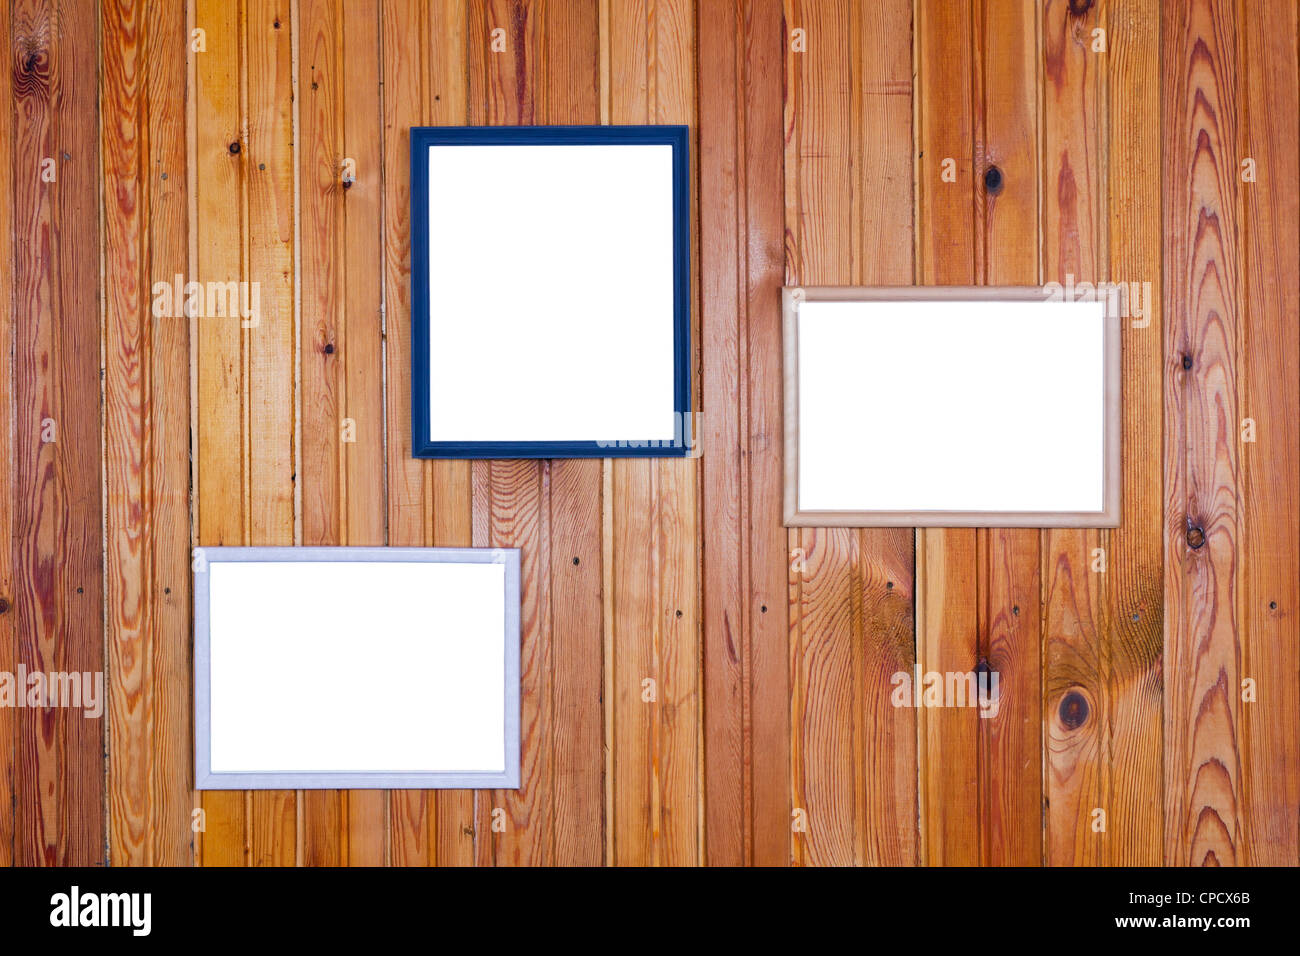 On the old yellow rural home wall of pine wood planks hung empty white pictures frames - Stock Image